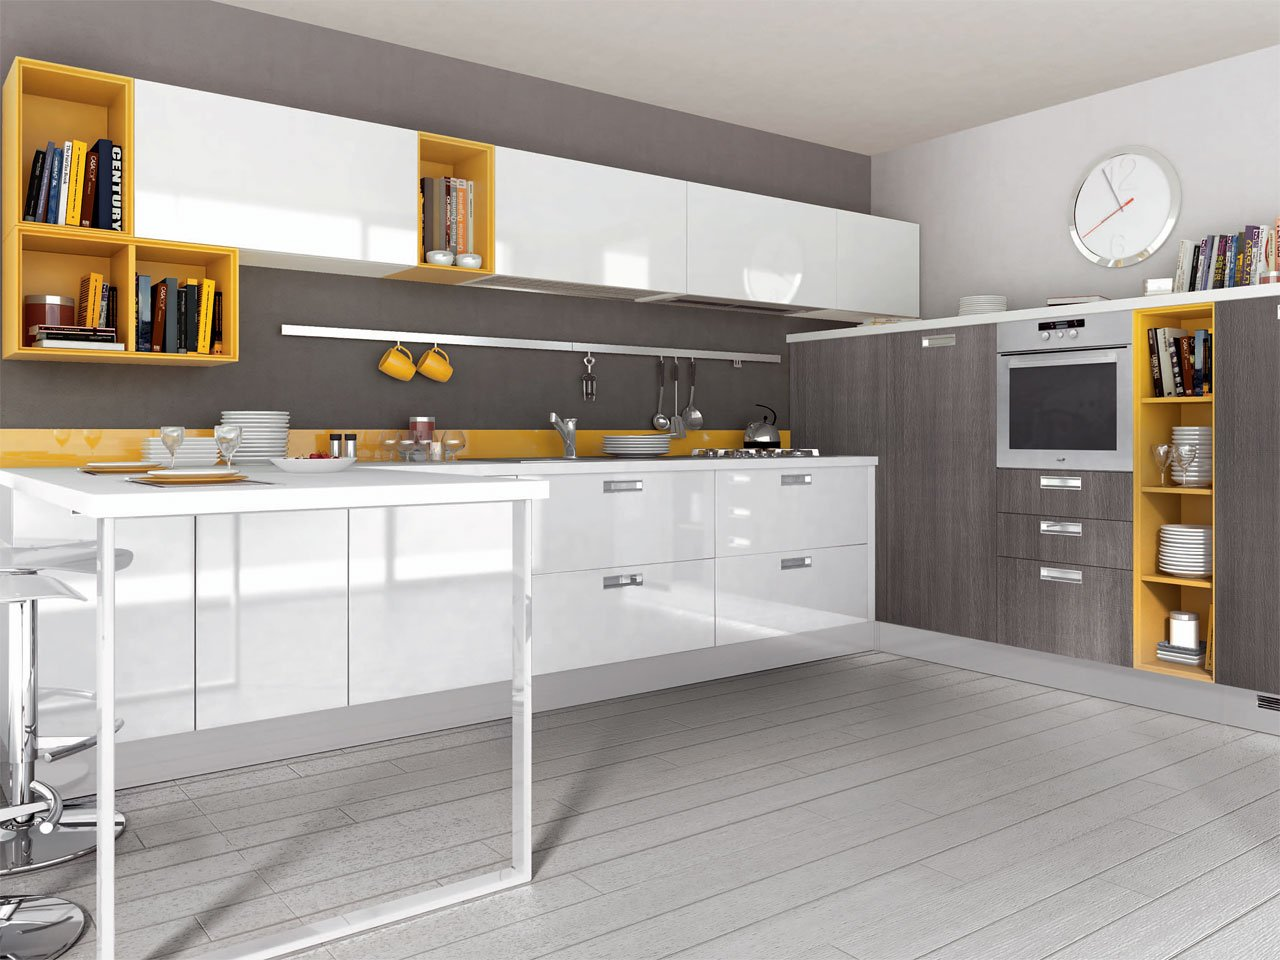 Noemi fitted kitchen by cucine lube - Cucine componibili lube ...